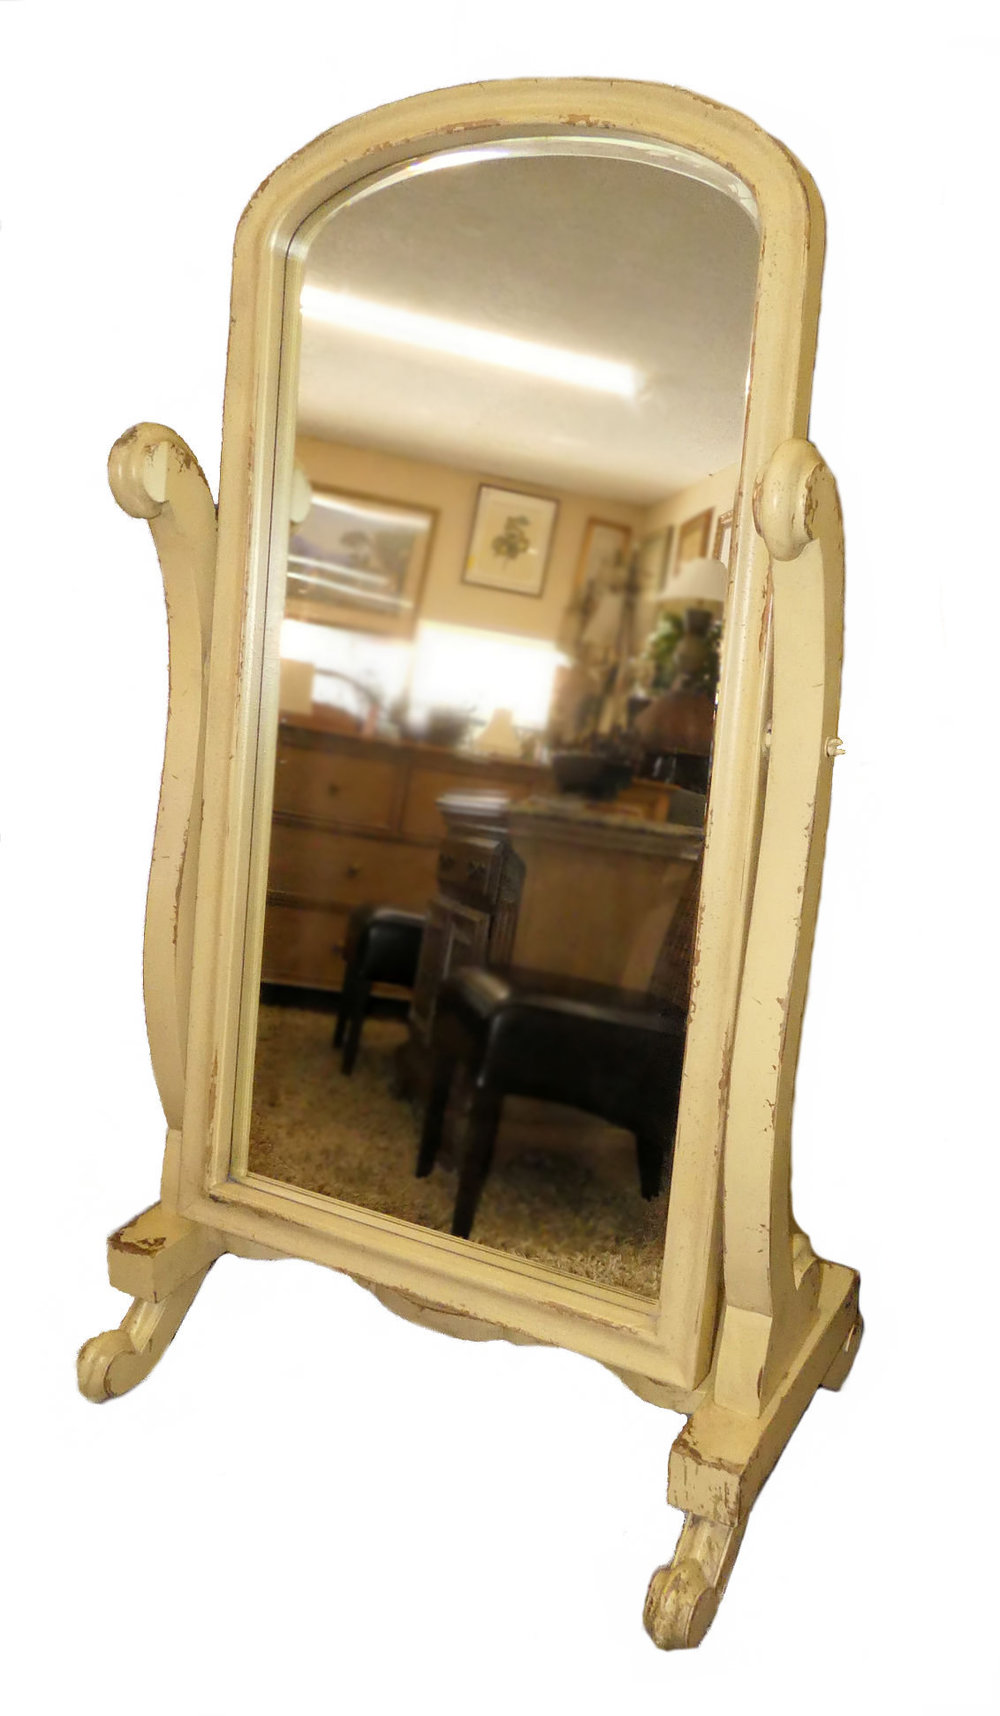 SOLD - Habersham Cheval Mirror